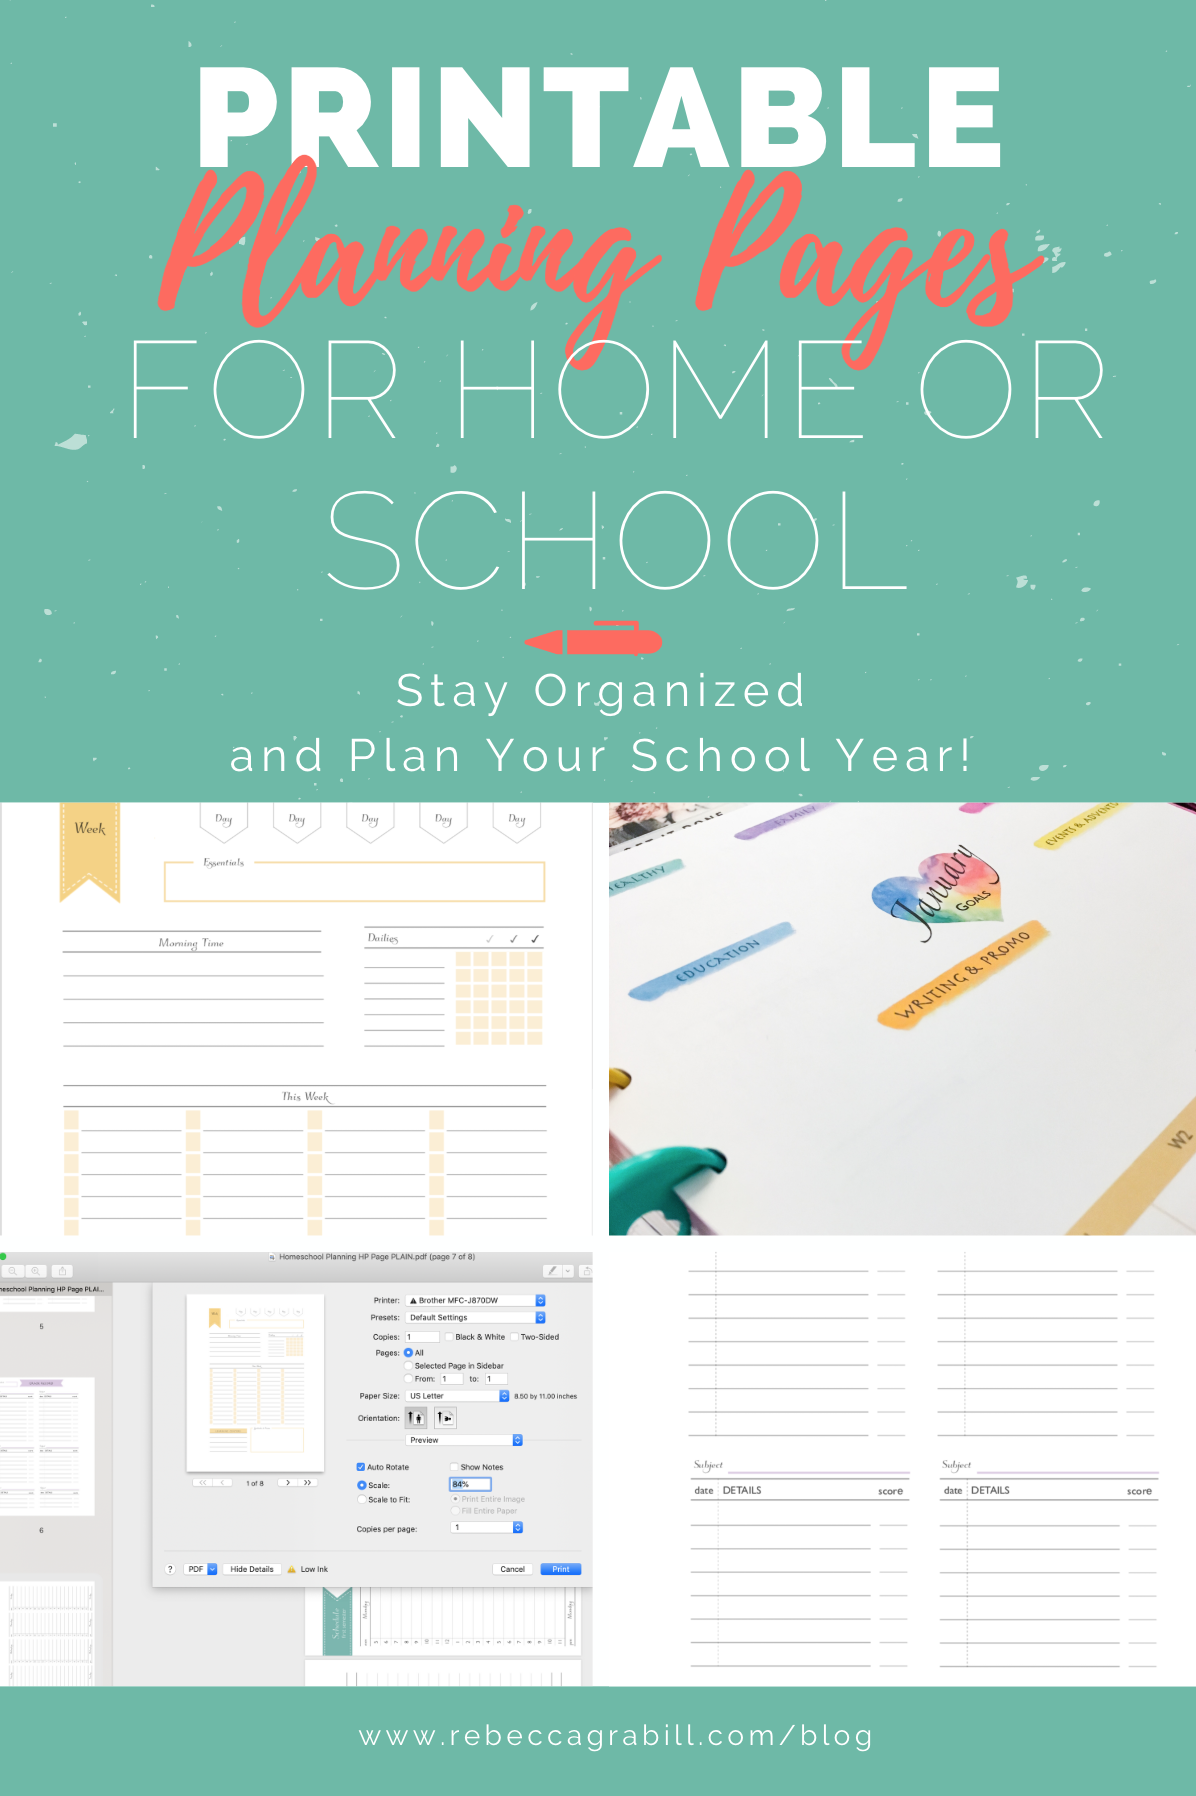 I created these school planning pages out of desperation. I SO needed to get back on track! Did they help? Some more than others. But I can say for certain that they are 100% cute. In this free download you'll find a weekly lesson plan, semester schedule, grade report sheets, and book/media record sheets. All can be sized for any planner, including my particular fave, the Happy Planner.